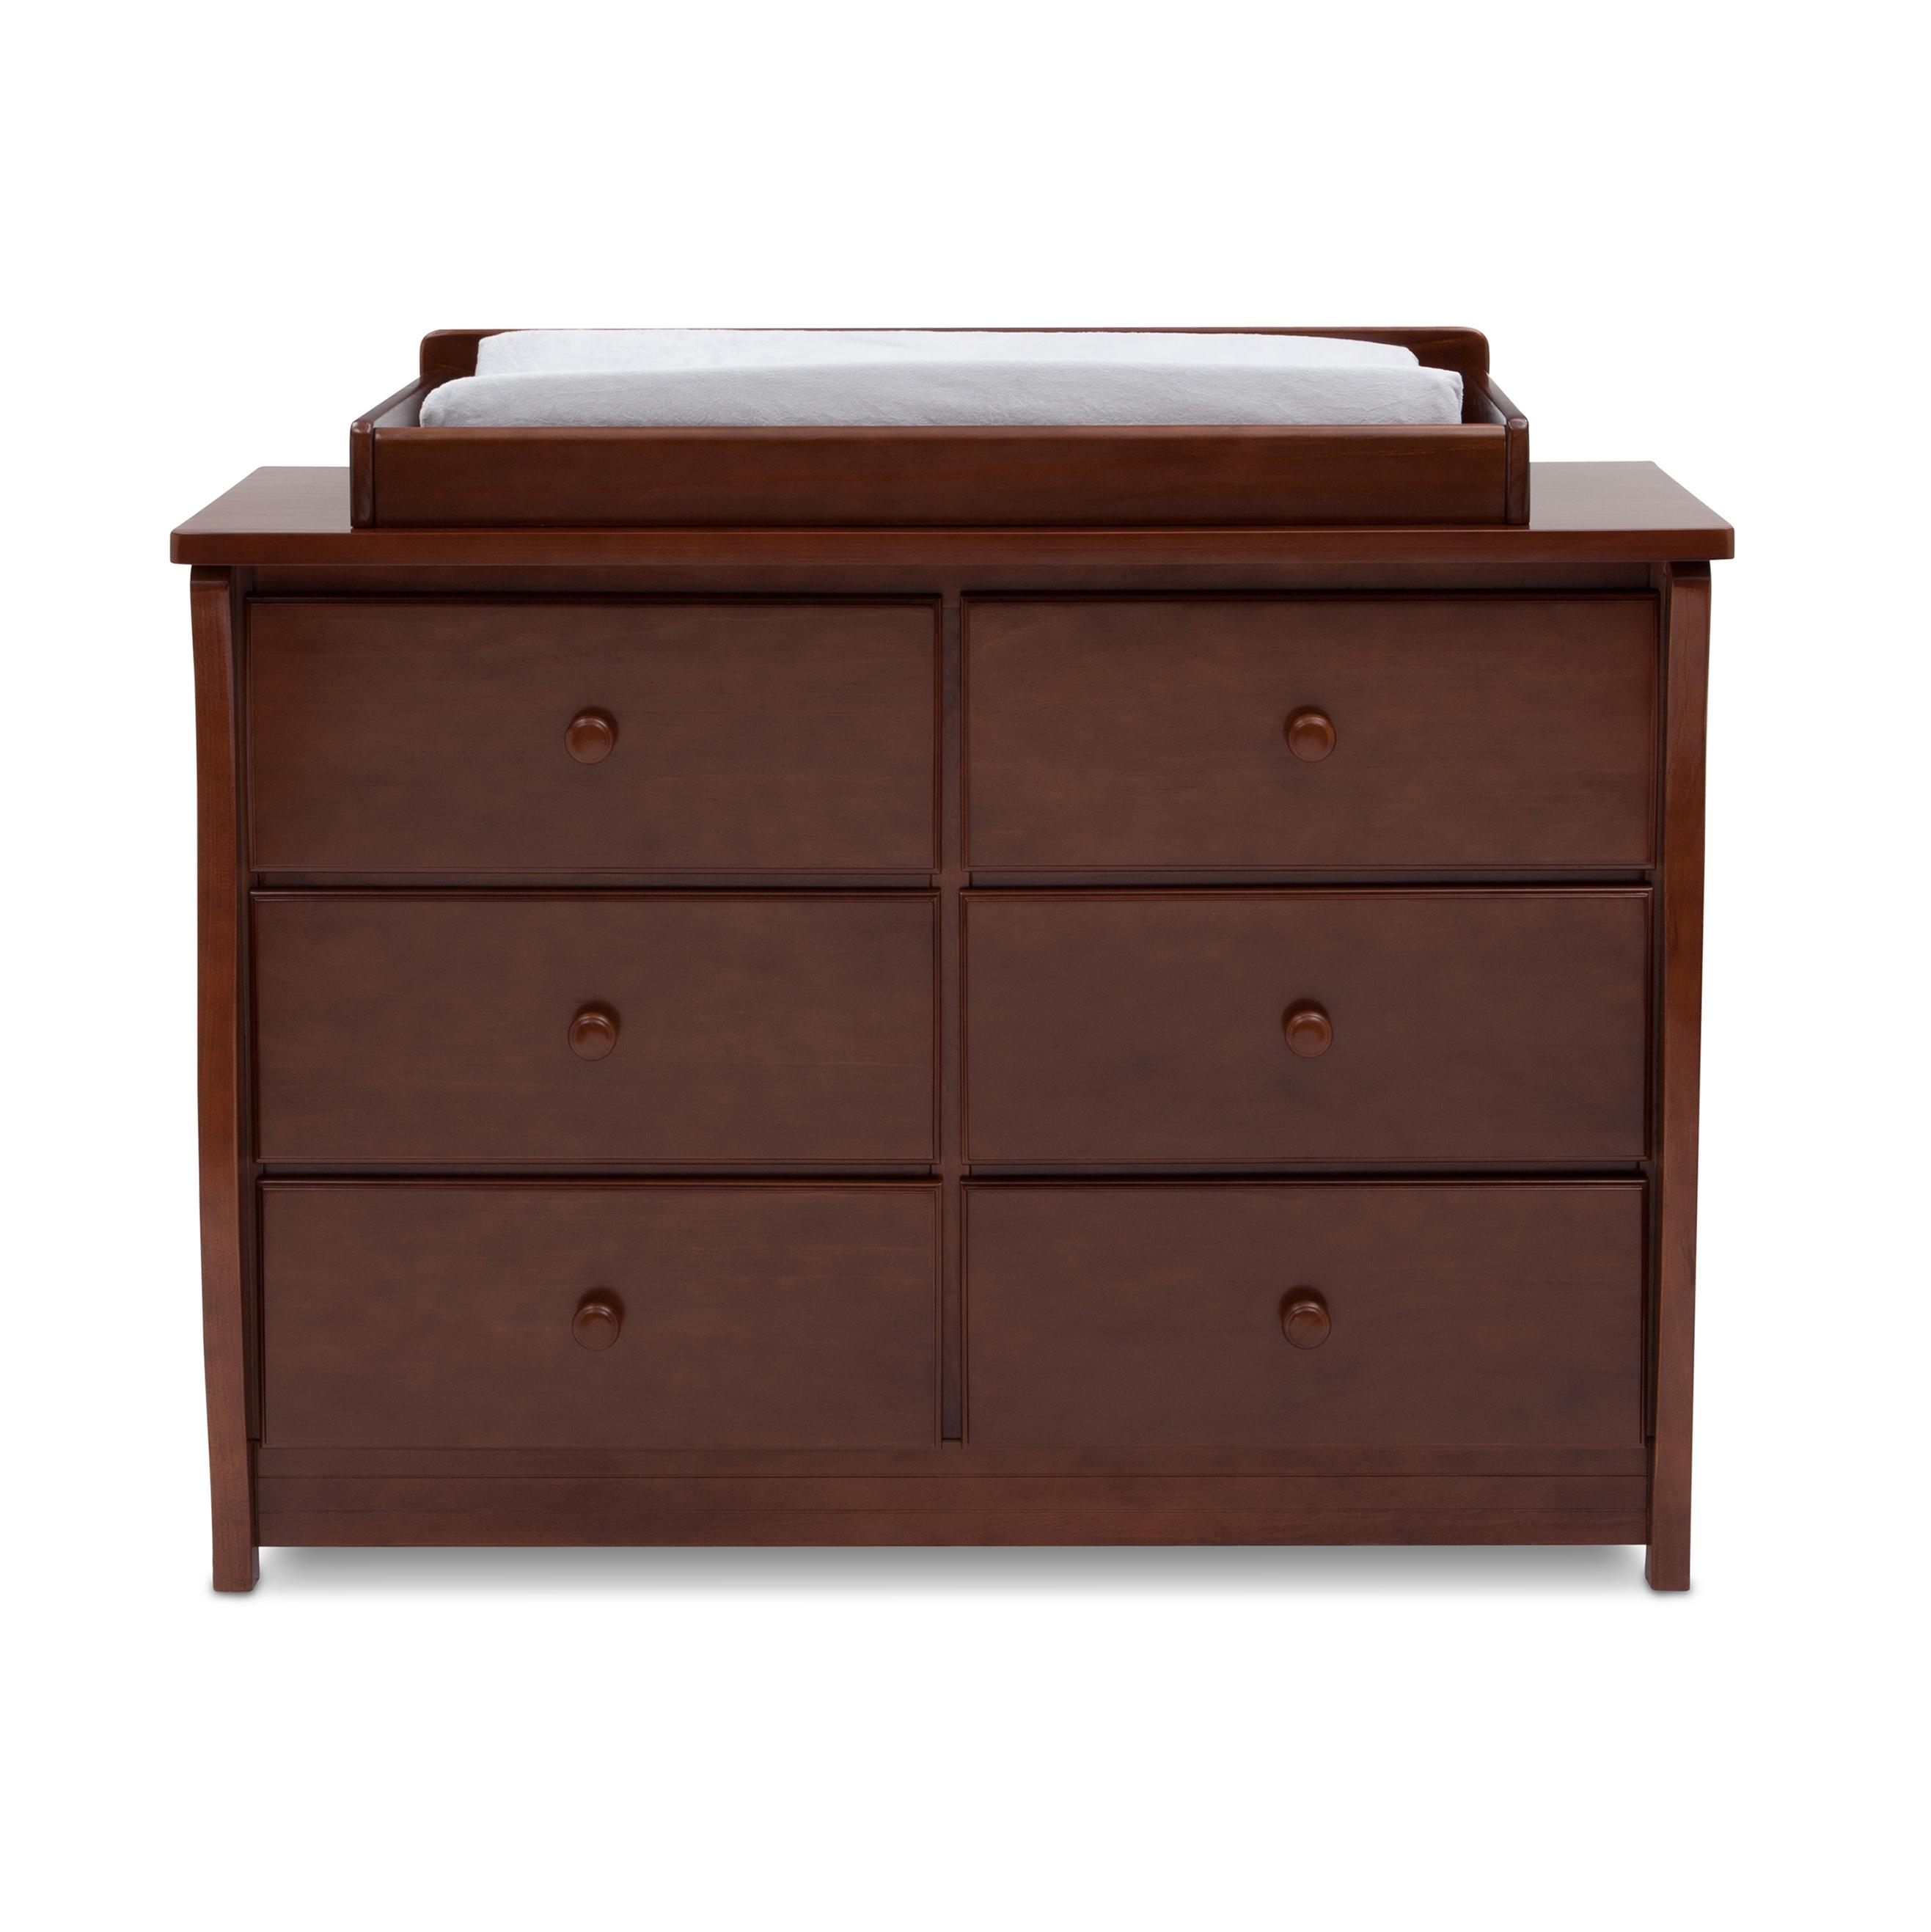 allium reviews one dresserchest furniture standard pdx drawer pennington dresser chest way wayfair